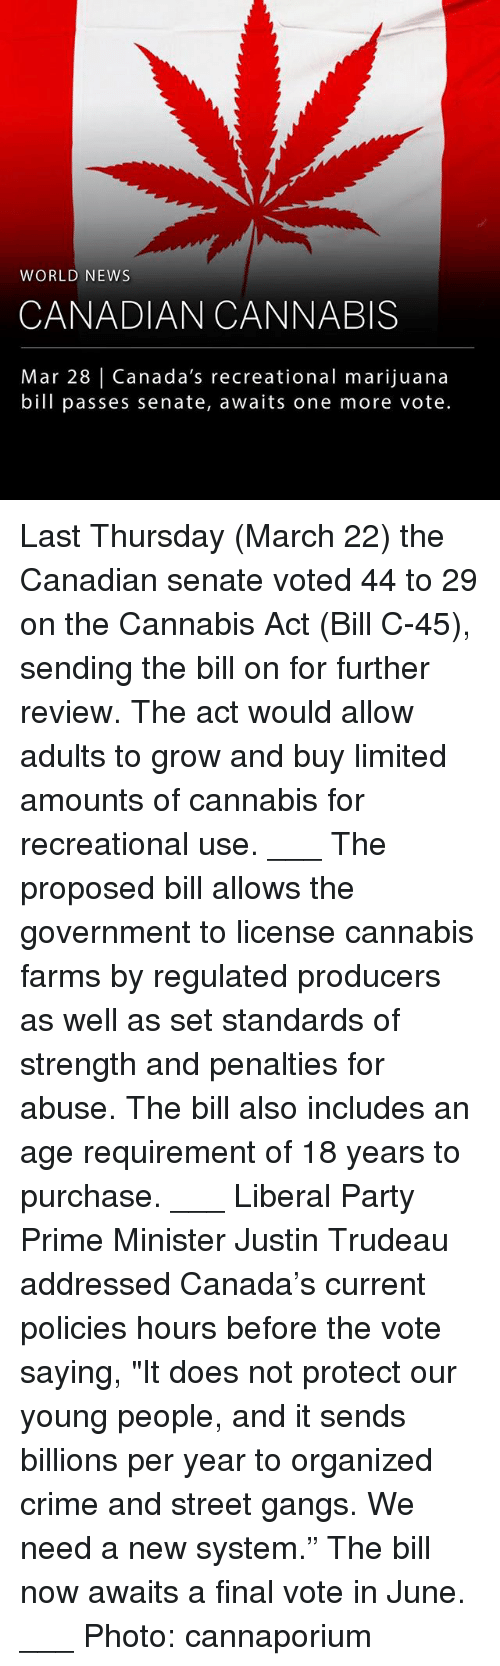 "Crime, Memes, and News: WORLD NEWS  CANADIAN CANNABIS  Mar 28 | Canada's recreational marijuana  bill passes senate, awaits one more vote Last Thursday (March 22) the Canadian senate voted 44 to 29 on the Cannabis Act (Bill C-45), sending the bill on for further review. The act would allow adults to grow and buy limited amounts of cannabis for recreational use. ___ The proposed bill allows the government to license ­cannabis farms by regulated producers as well as set standards of strength and penalties for abuse. The bill also includes an age requirement of 18 years to purchase. ___ Liberal Party Prime Minister Justin Trudeau addressed Canada's current policies hours before the vote saying, ""It does not protect our young people, and it sends billions per year to organized crime and street gangs. We need a new system."" The bill now awaits a final vote in June. ___ Photo: cannaporium"